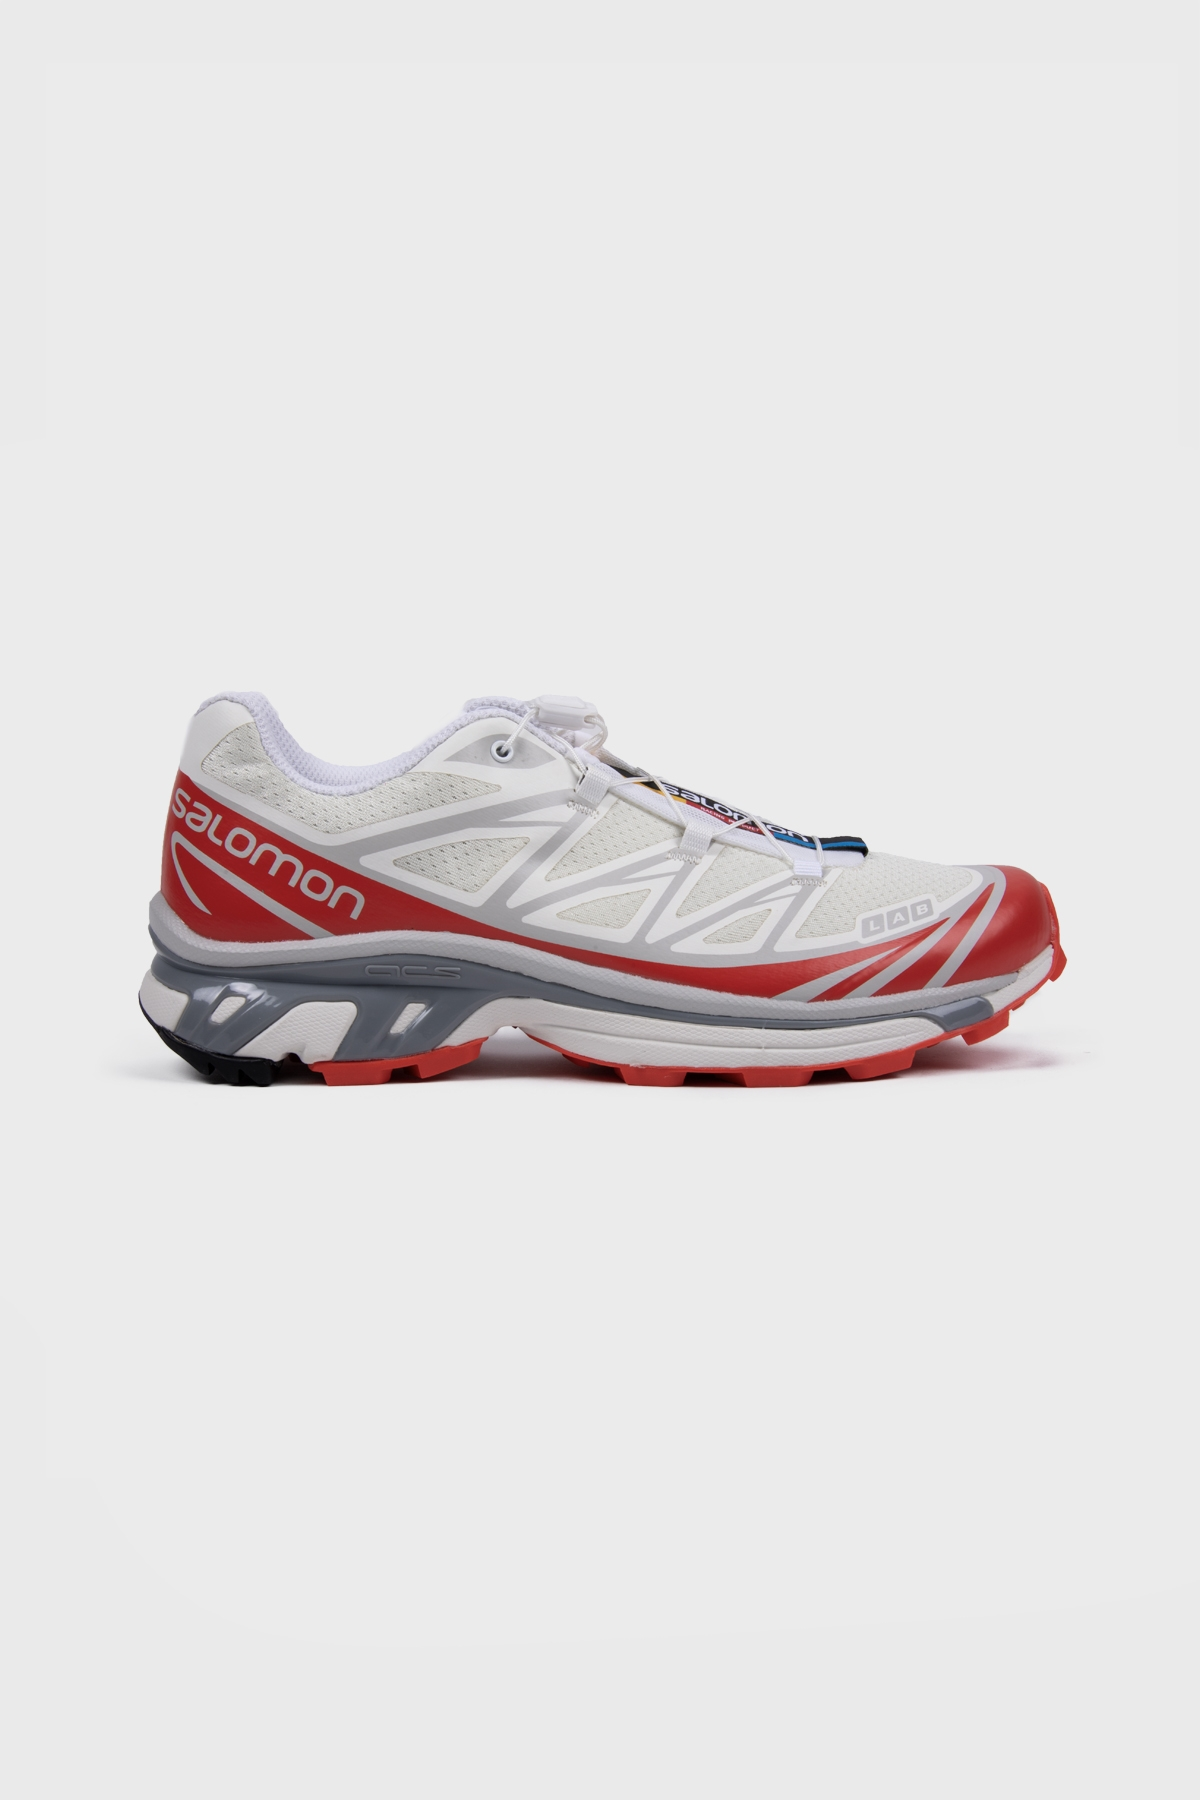 Salomon - S/LAB XT-6 ADV - Vanilla ice white red